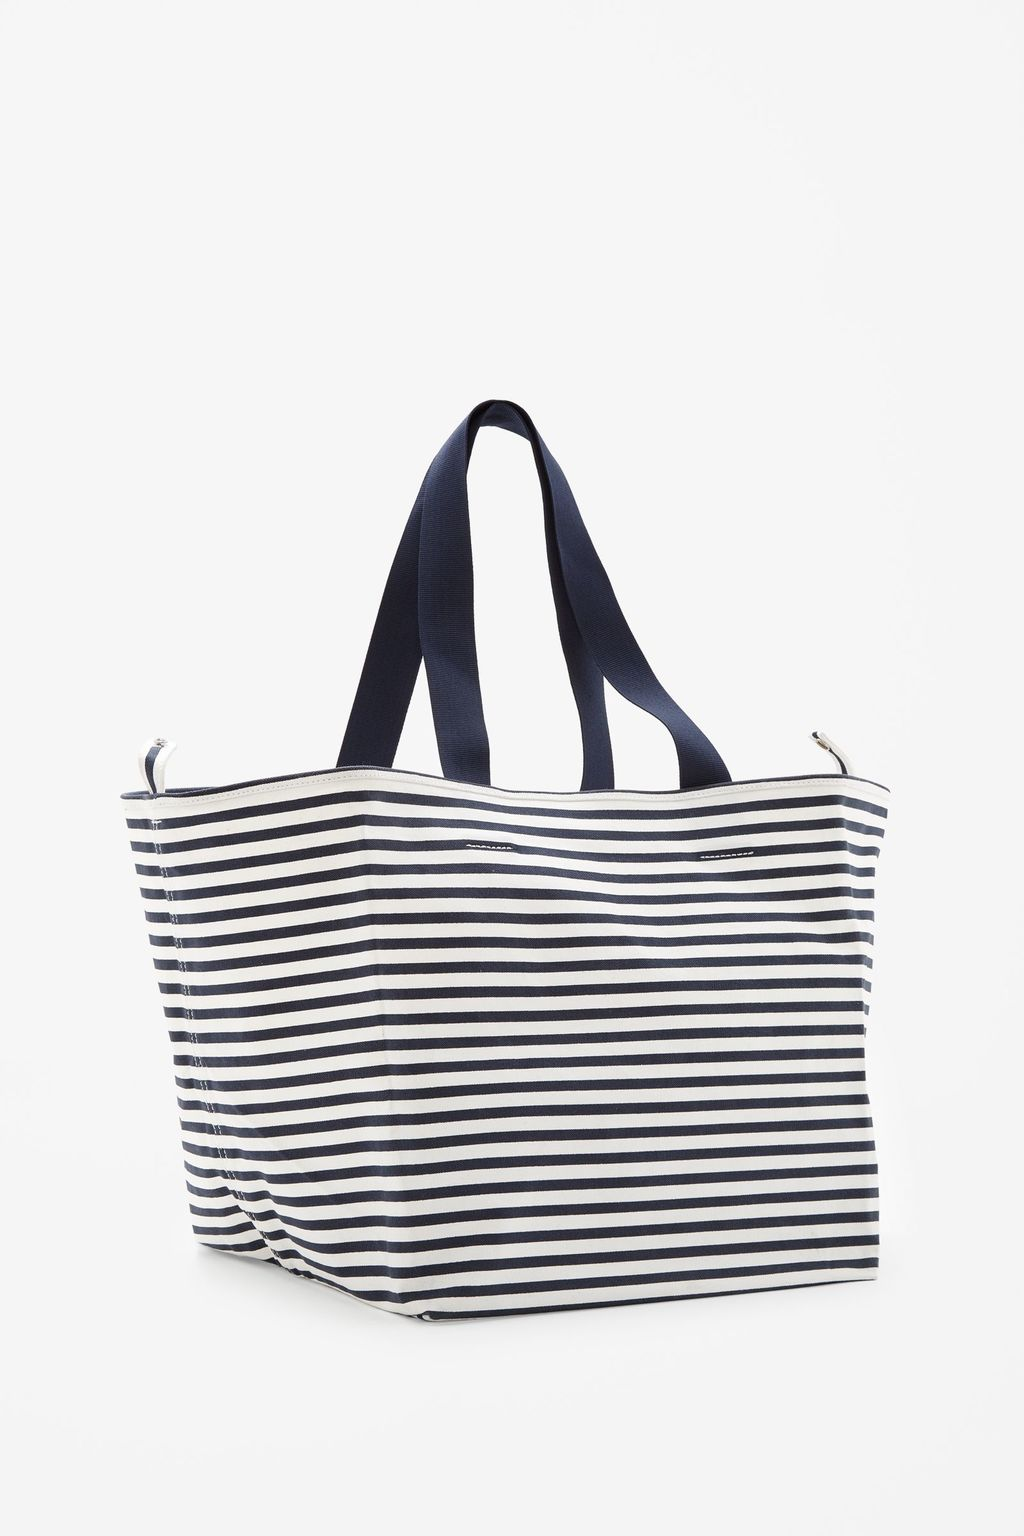 Striped Canvas Bag - secondary colour: white; predominant colour: navy; occasions: casual, holiday; type of pattern: standard; style: tote; length: handle; size: oversized; material: fabric; finish: plain; pattern: horizontal stripes; season: s/s 2015; wardrobe: highlight